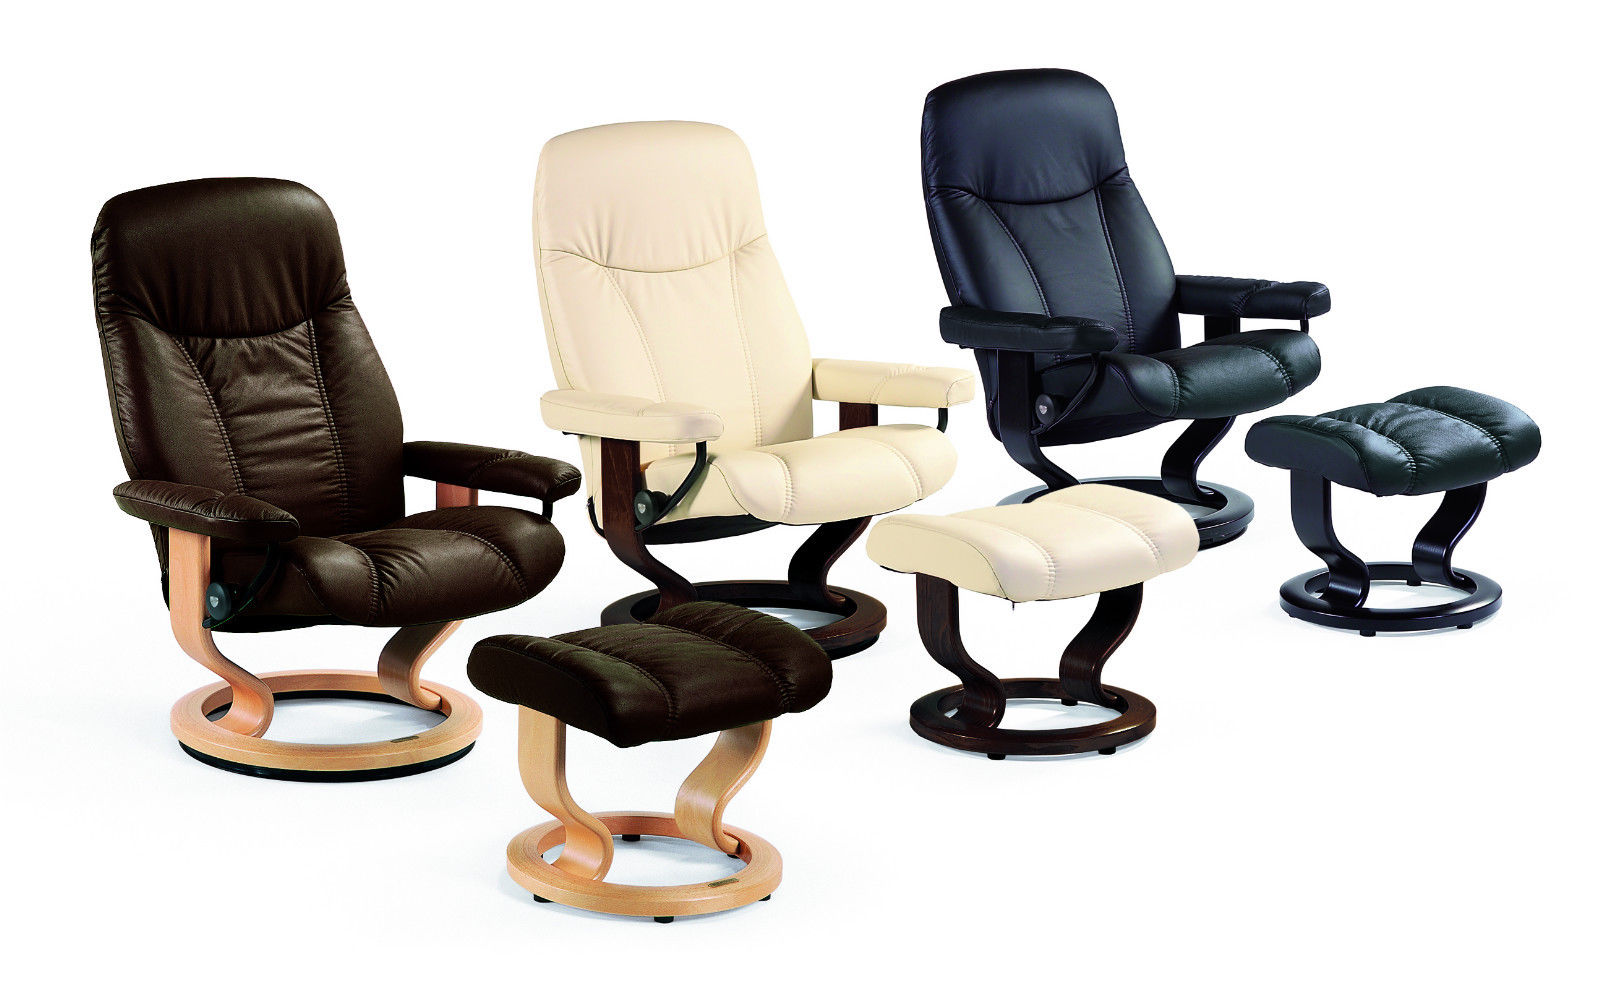 Stressless Consul M Sessel Und Hocker Stressless Consul Relaxsessel Mit Hocker In Leder